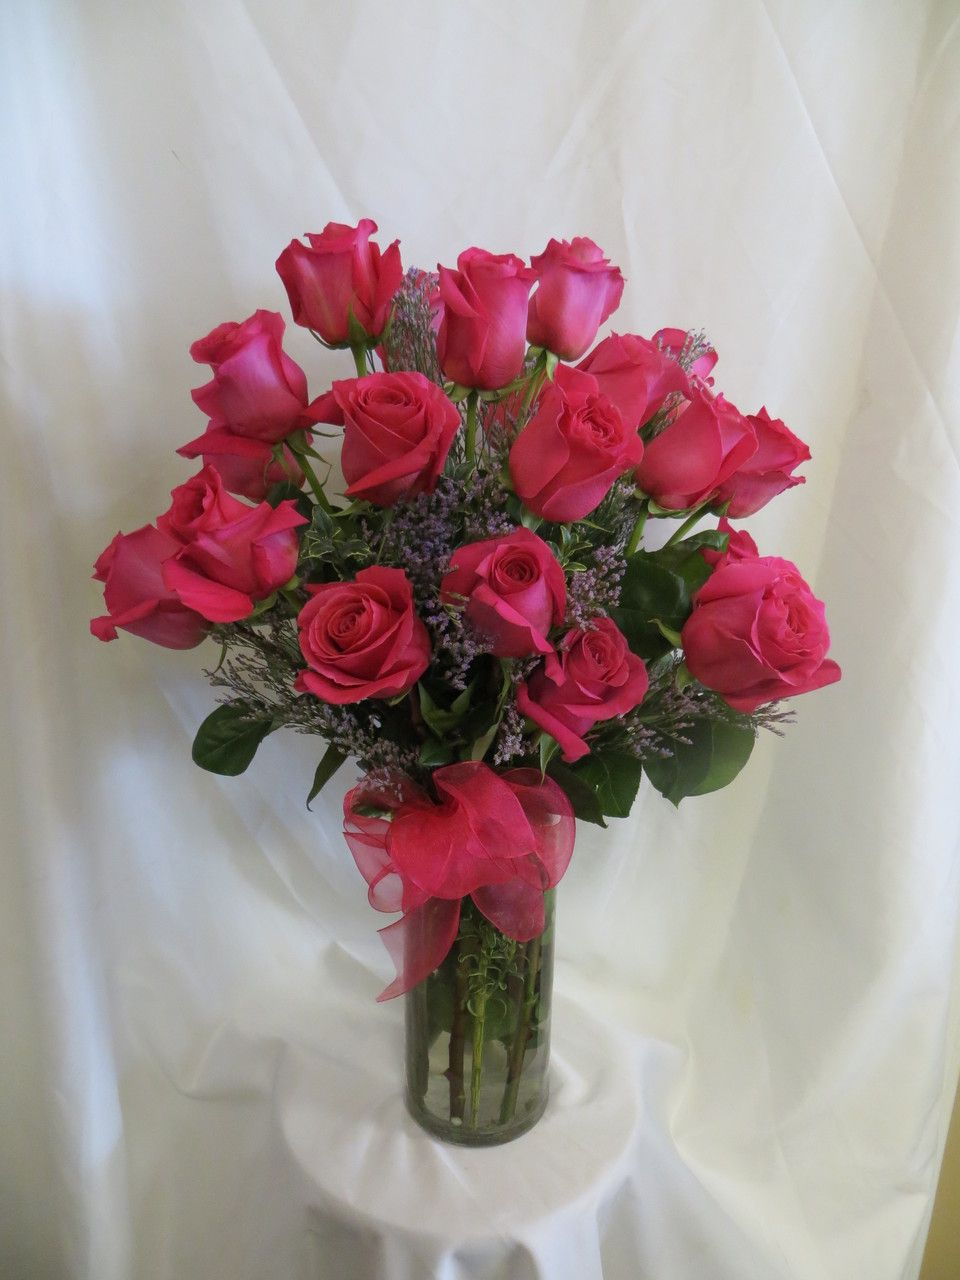 Hot Pink Roses for Valentines Day 2 Dozen Roses